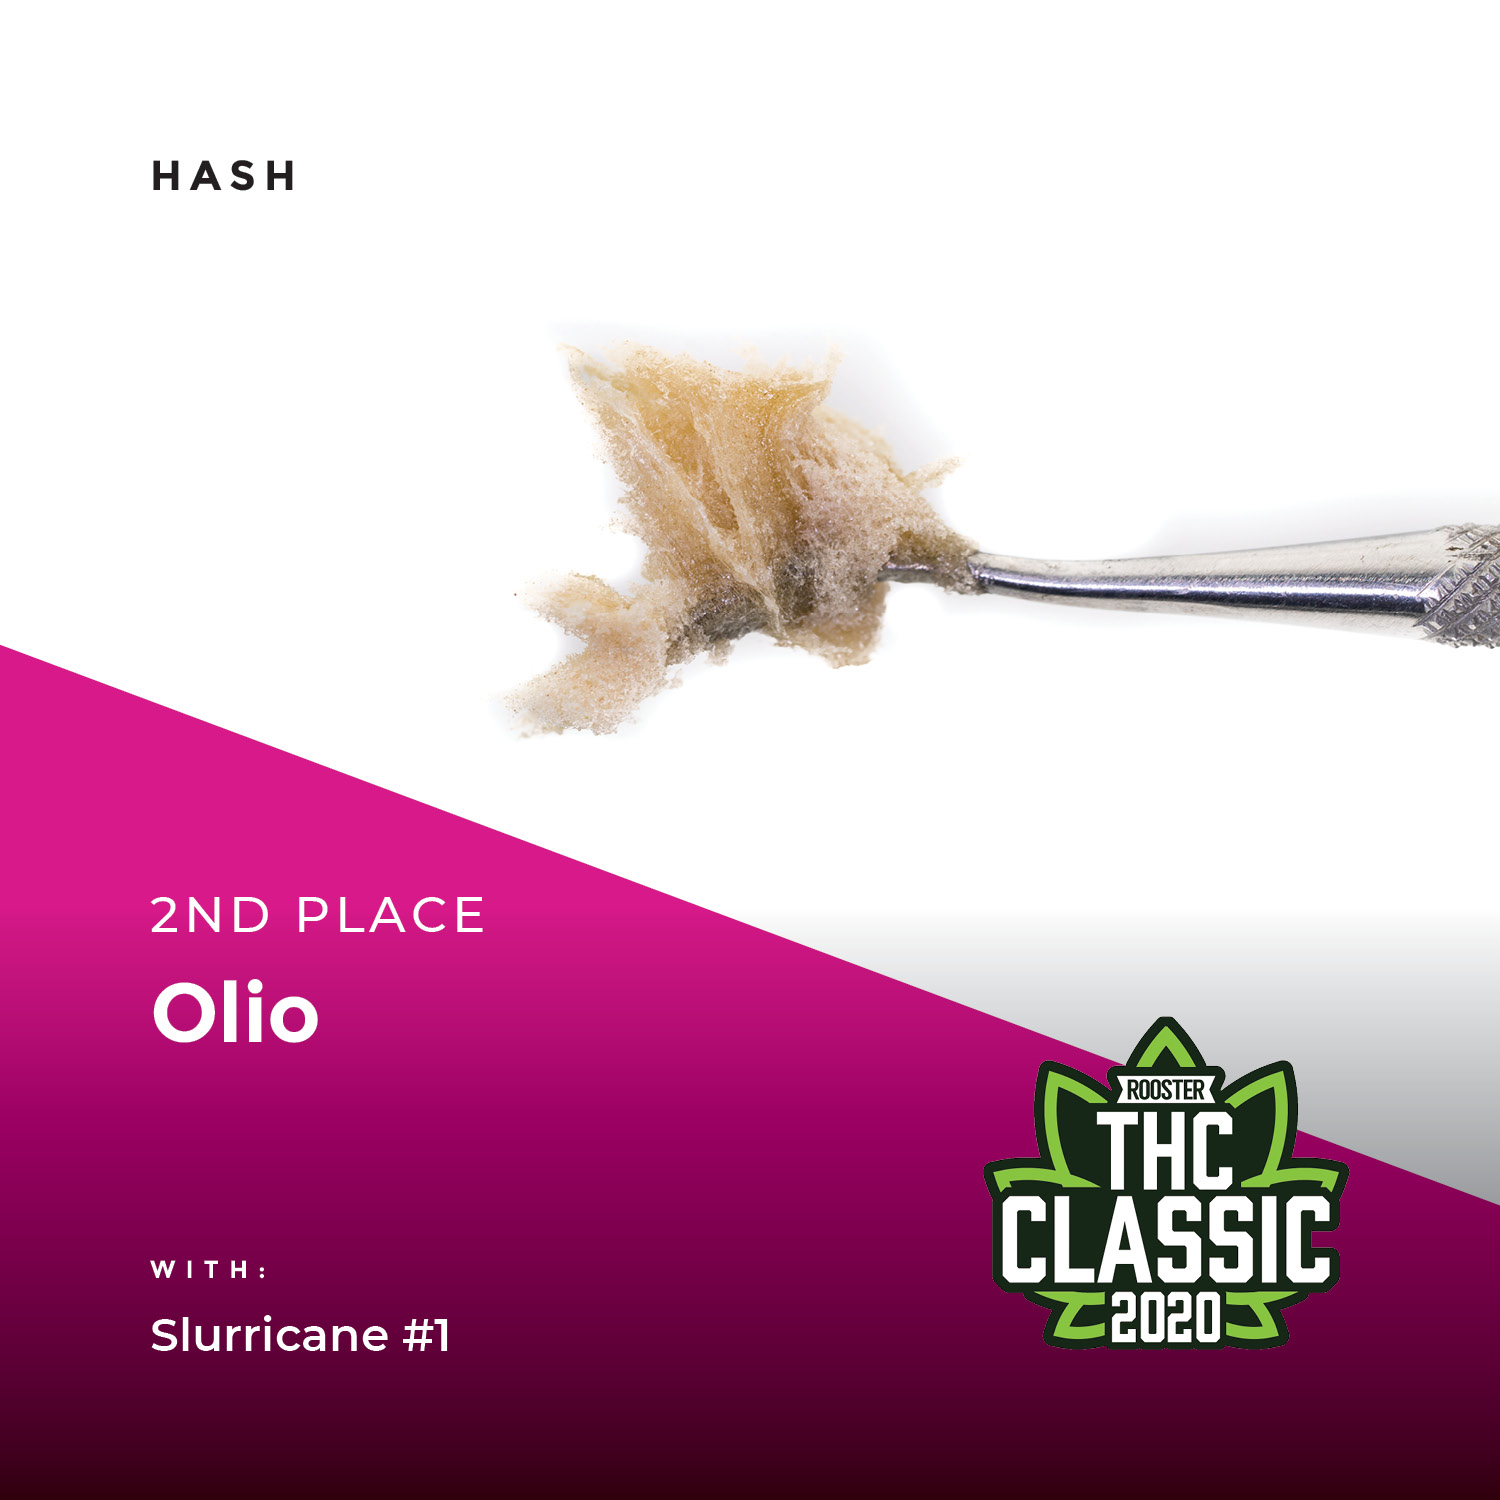 Best Colorado Cannabis Products: Hash